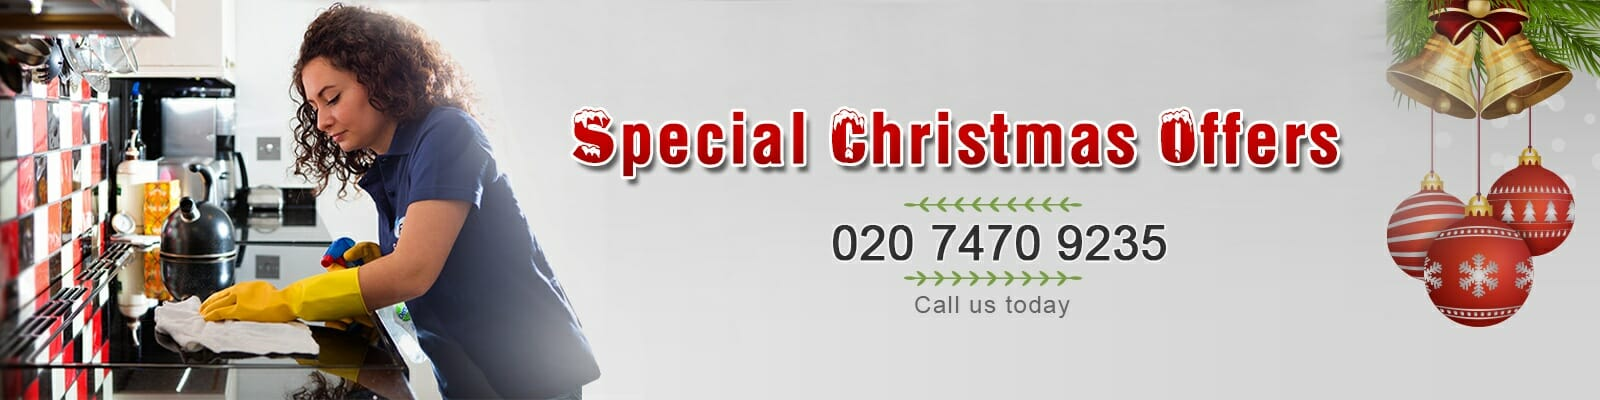 special-christmas-offers-slide